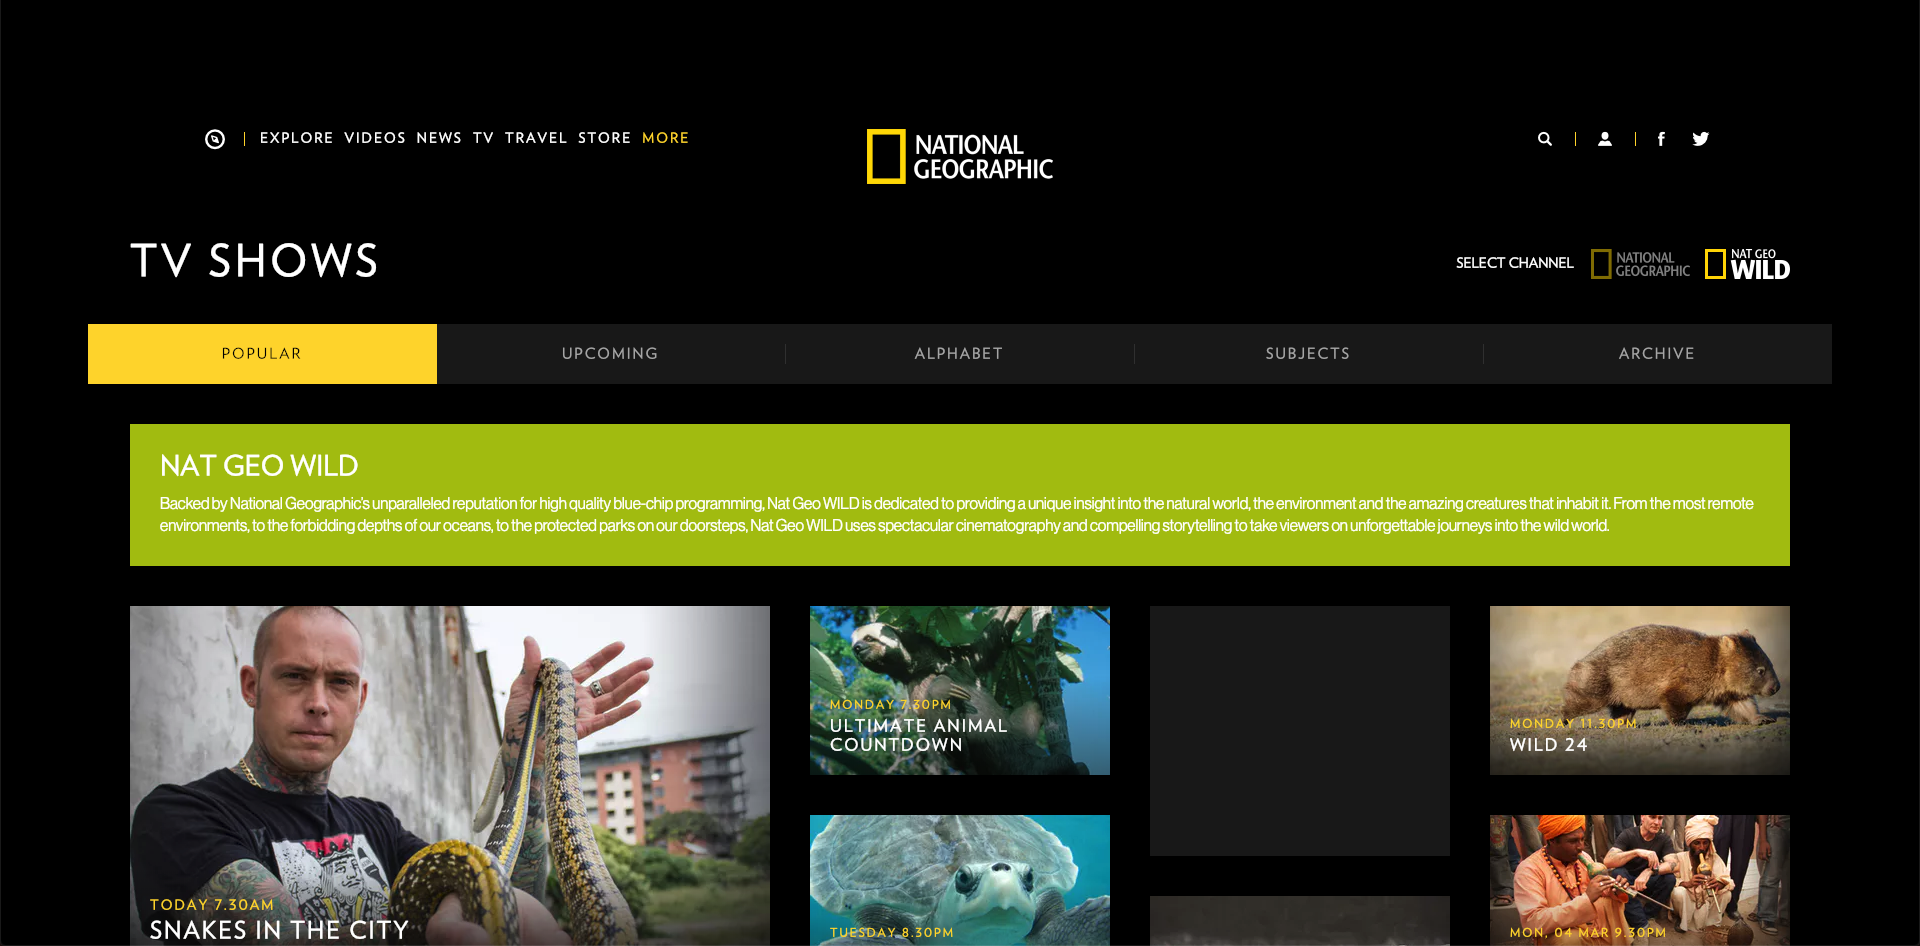 How to Watch National Geographic WILD Without Cable 2021 – Top 5 Options